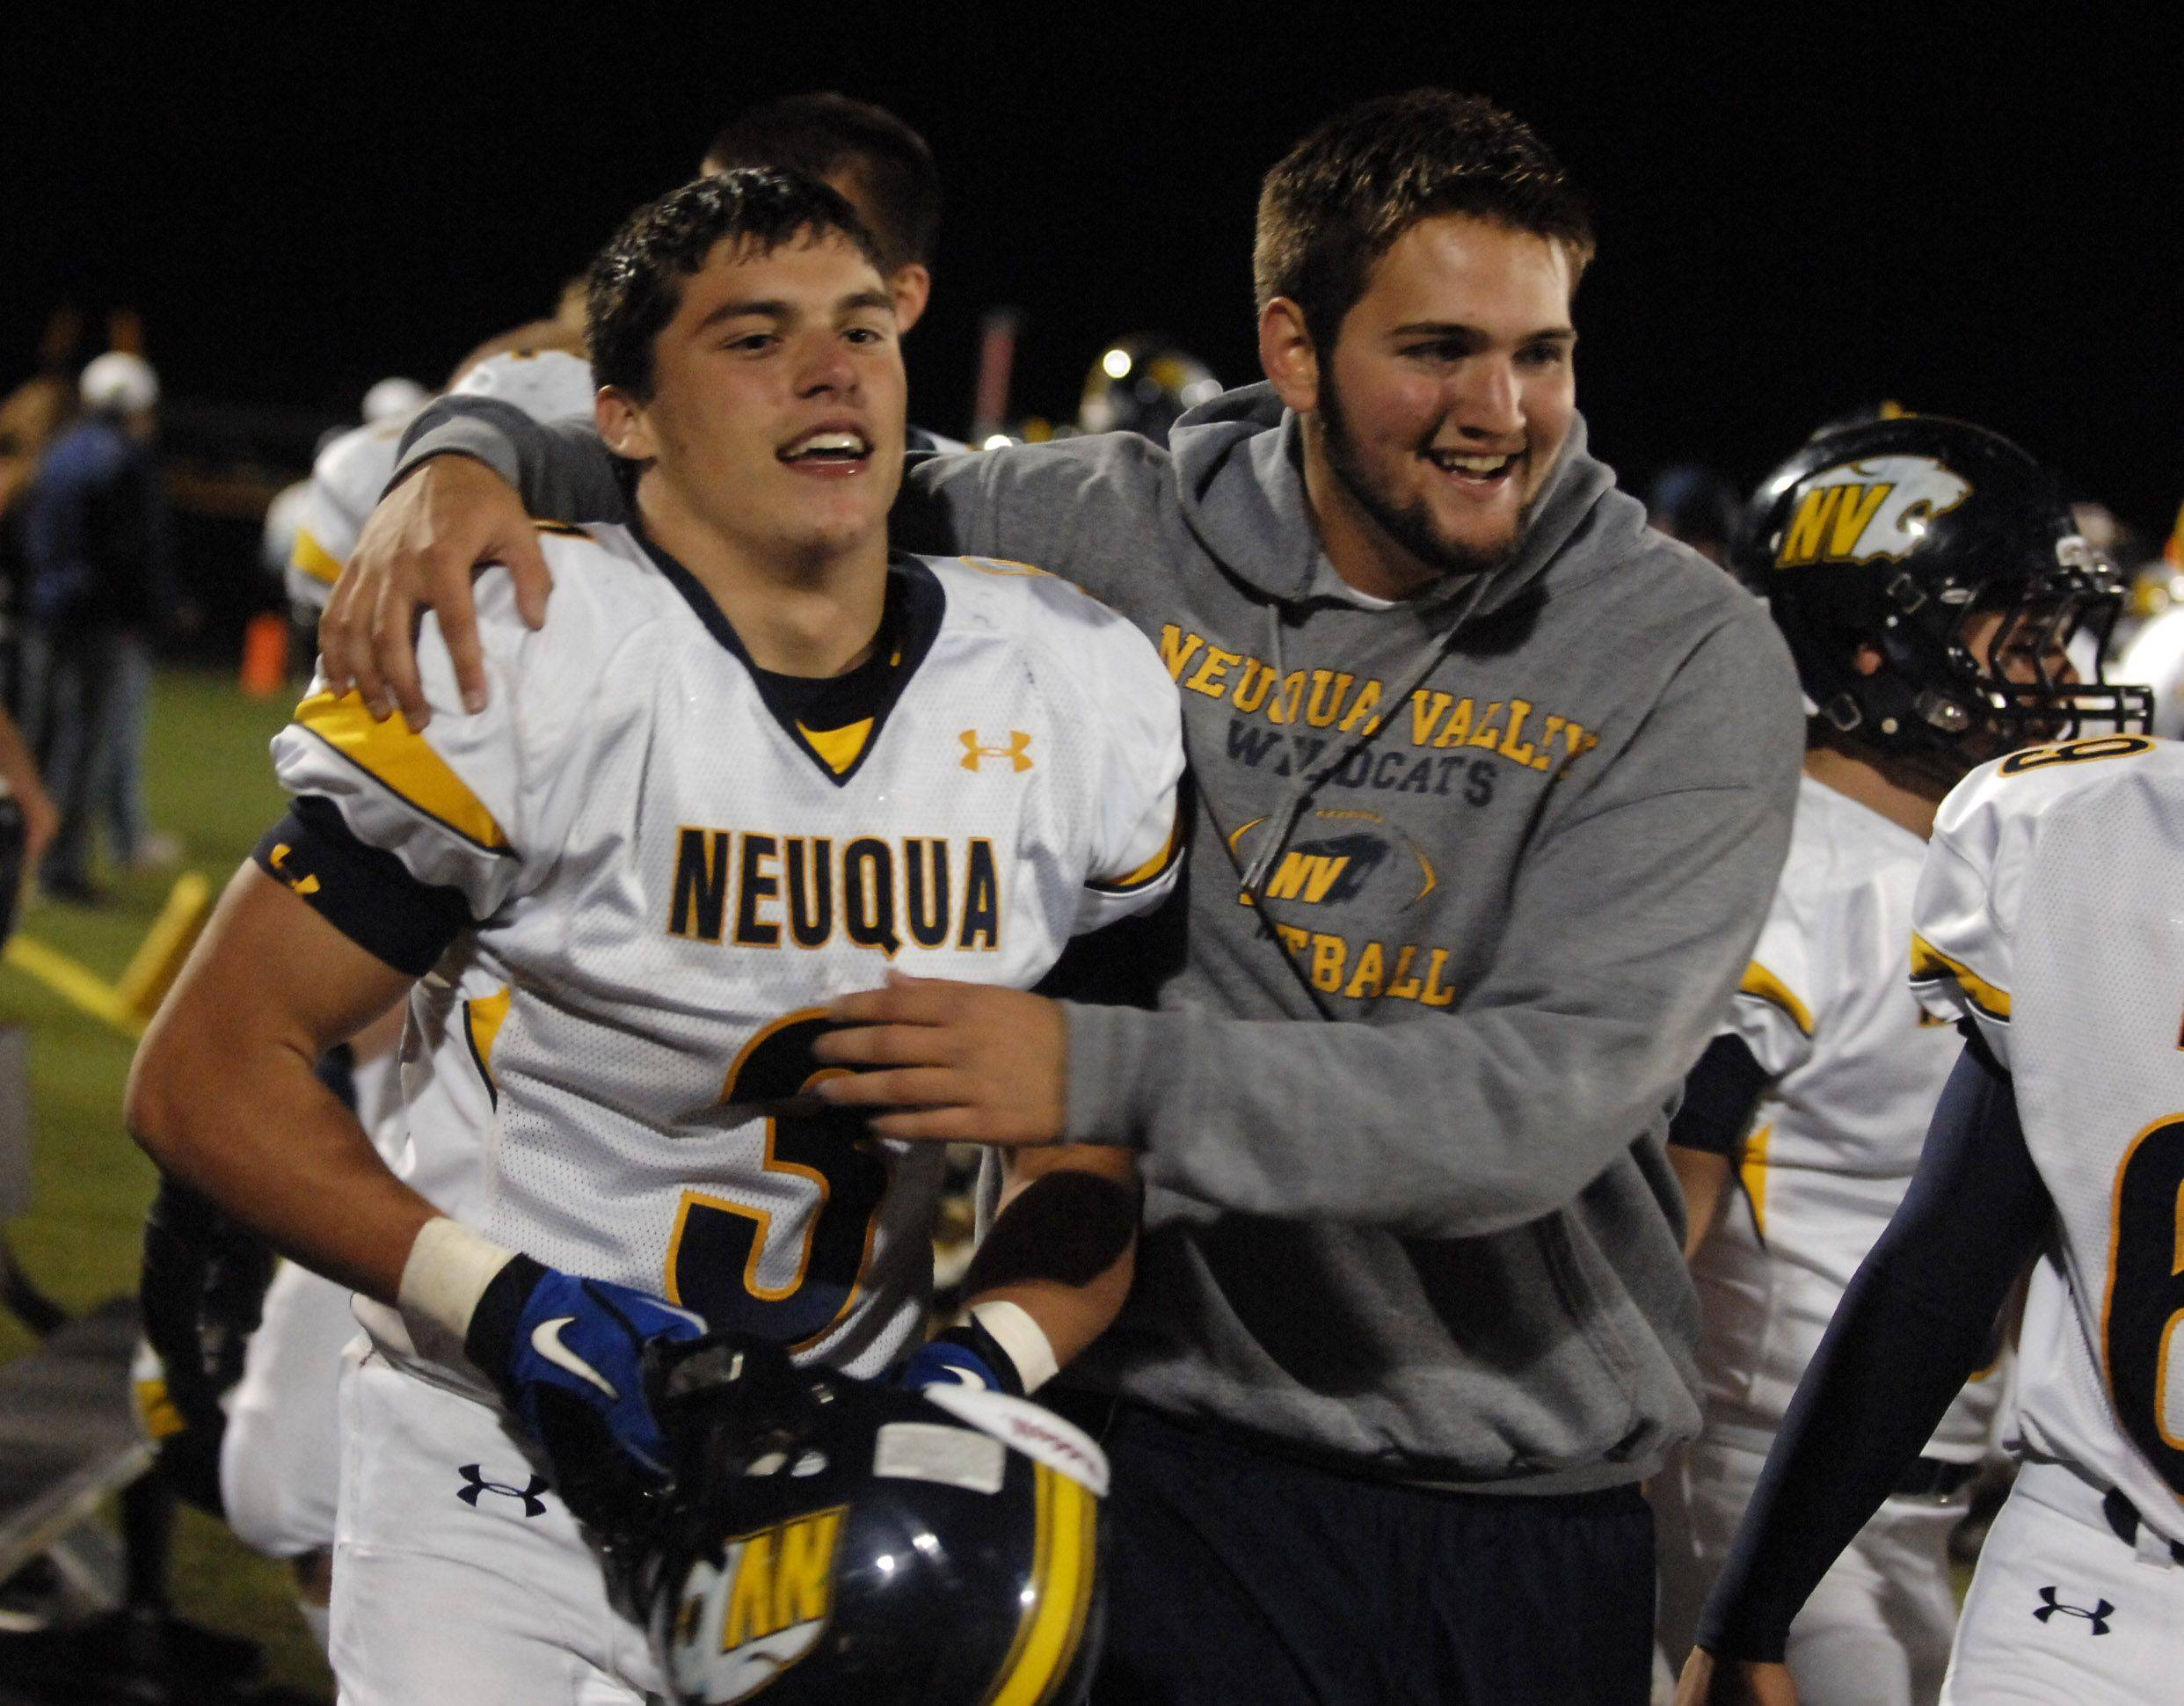 Week 8 - Images from the Neuqua Valley at Bartlett football game Friday, October 15, 2010.